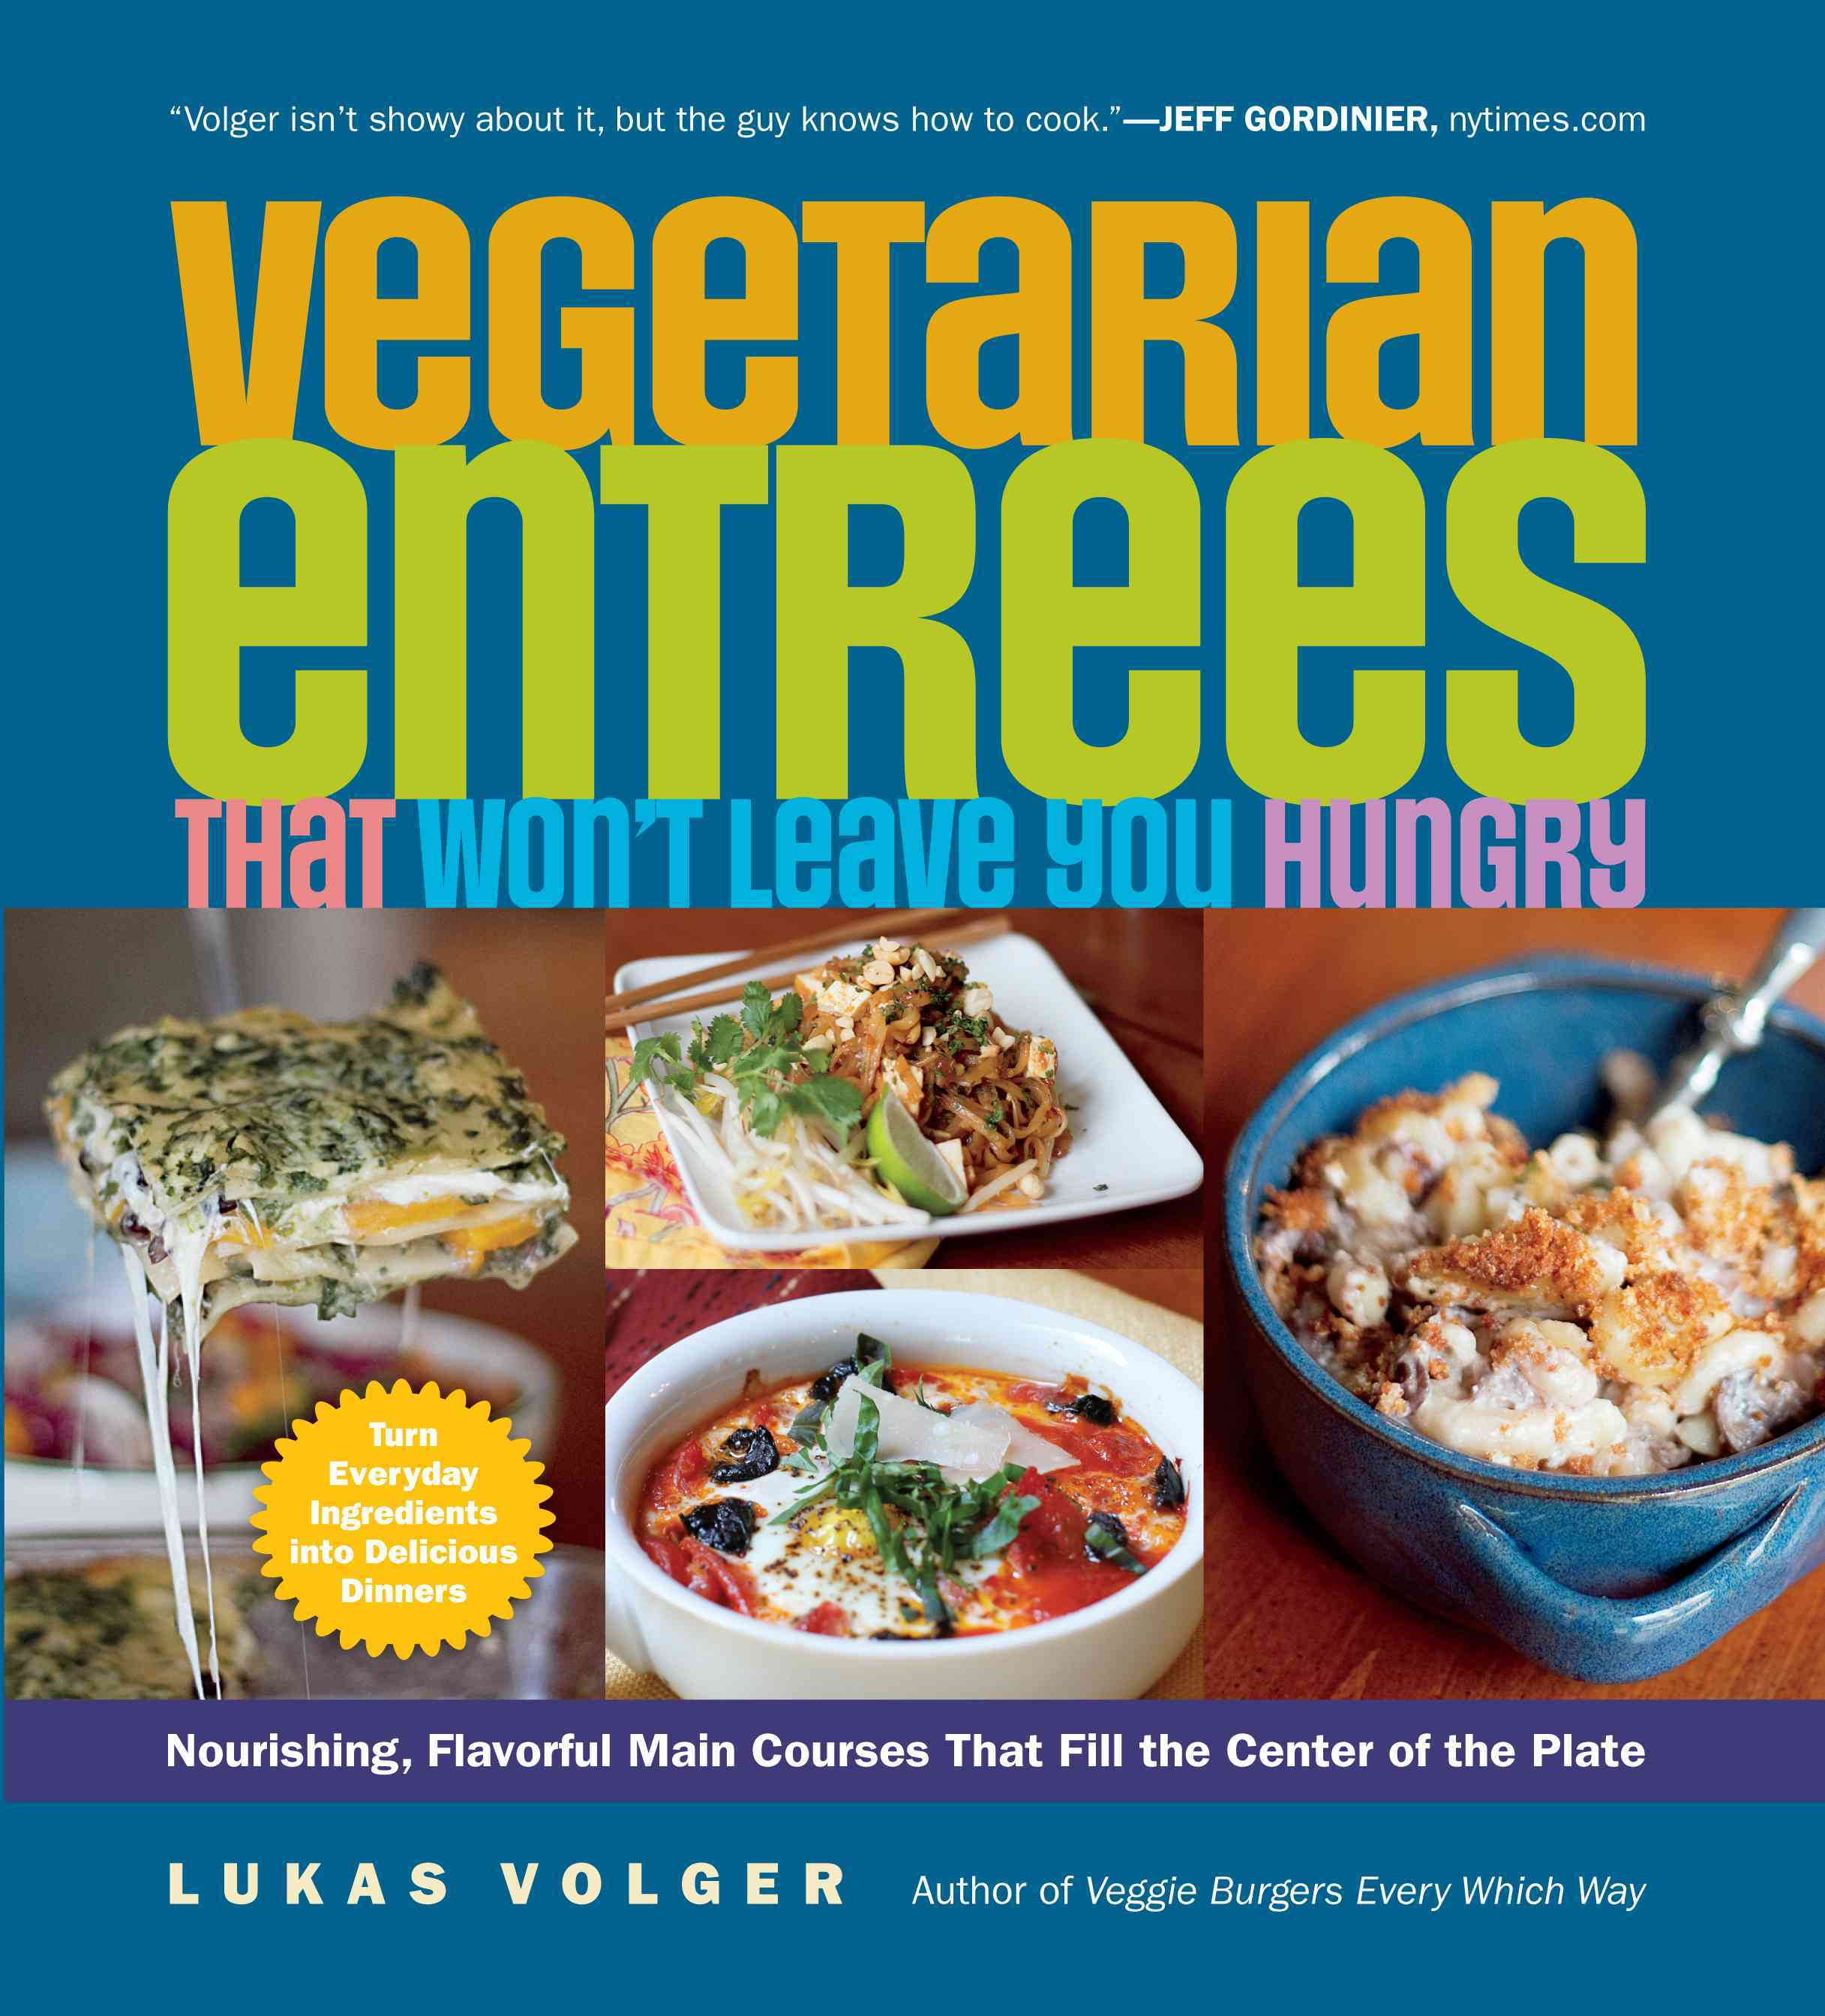 Vegetarian Entrees That Won't Leave You Hungry: Nourishing, Flavorful Main Courses That Fill the Center of the Plate (Paperback)